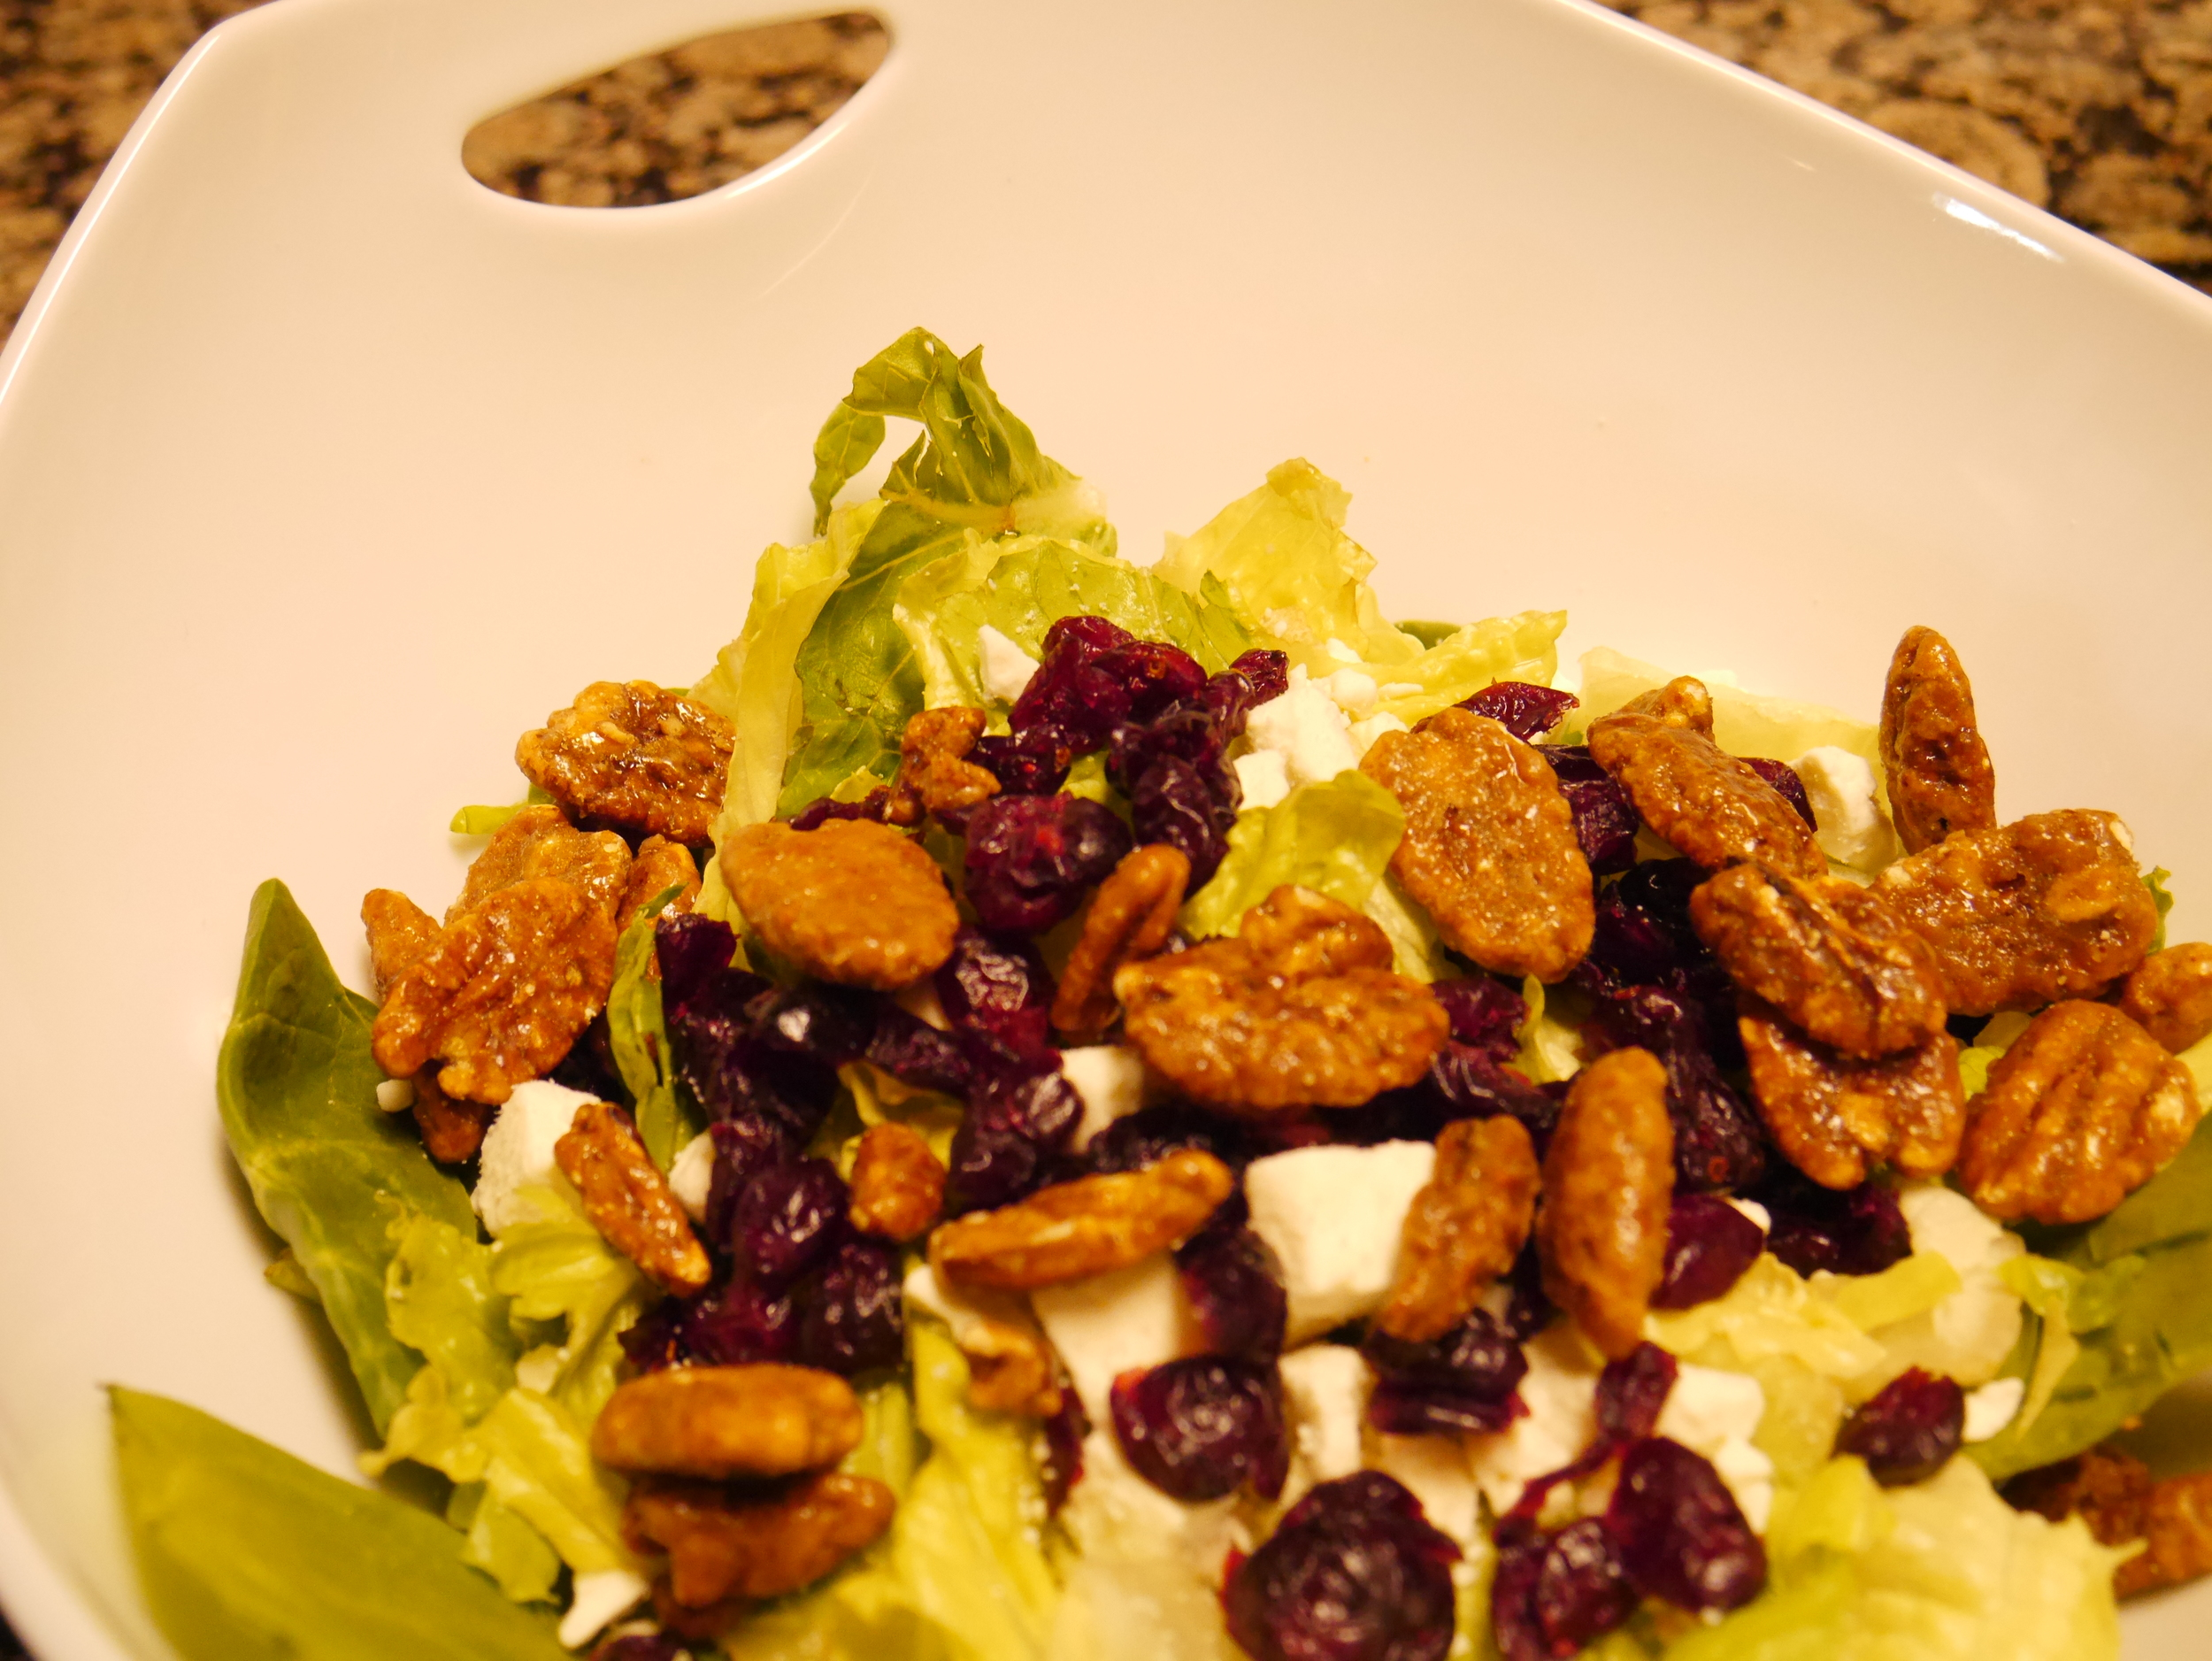 Spinach, romaine, feta, cranberry, and pecan salad.